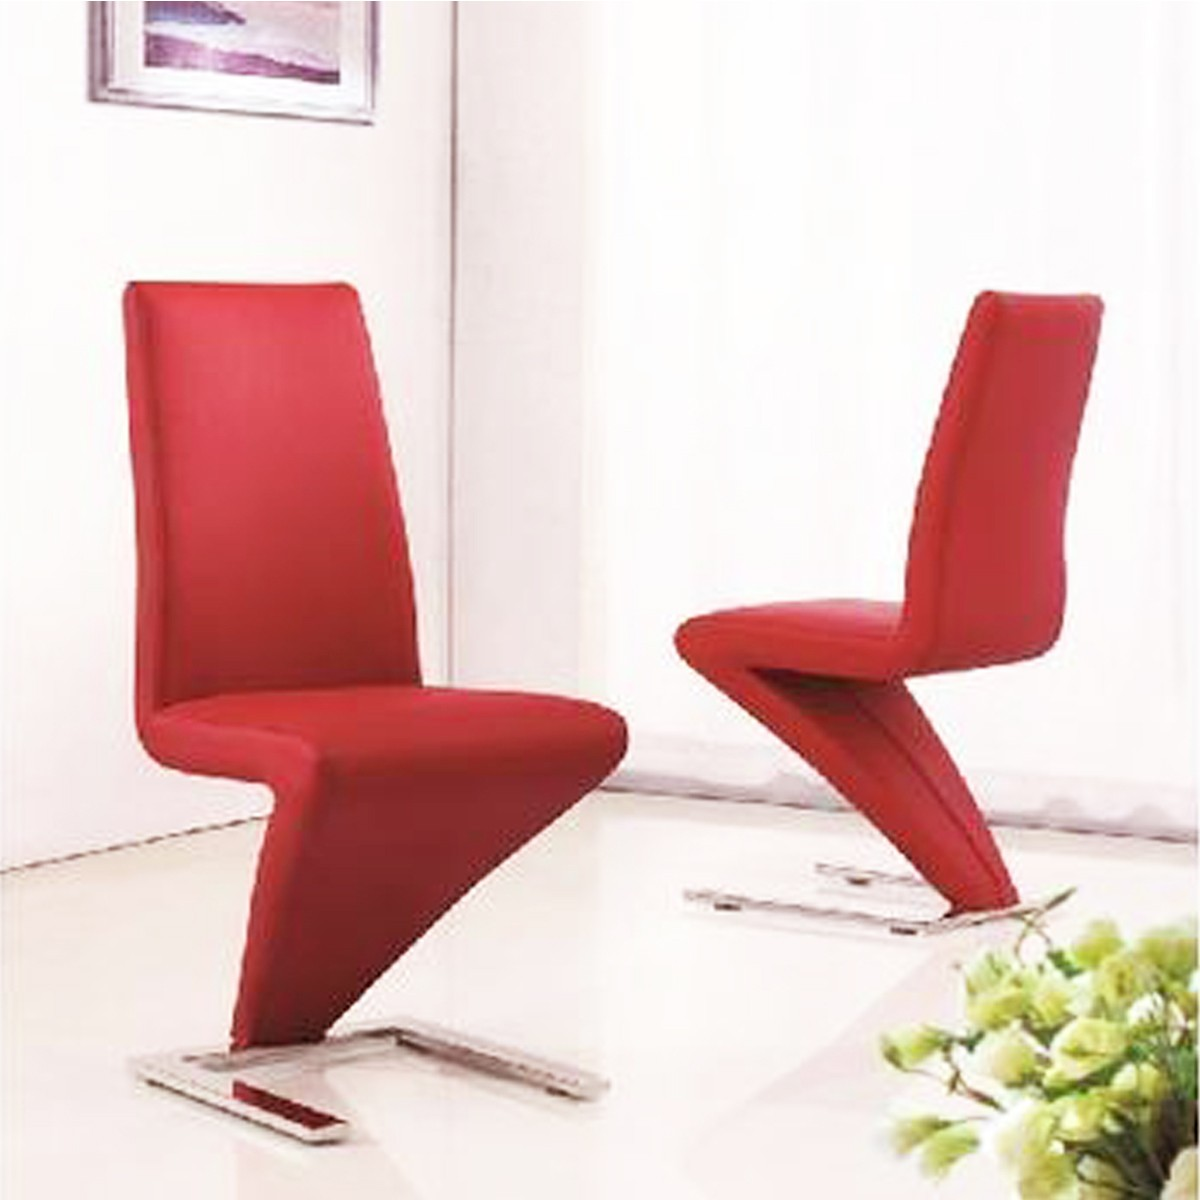 z shaped high chair reception room chairs back pu leather dining zigzag home